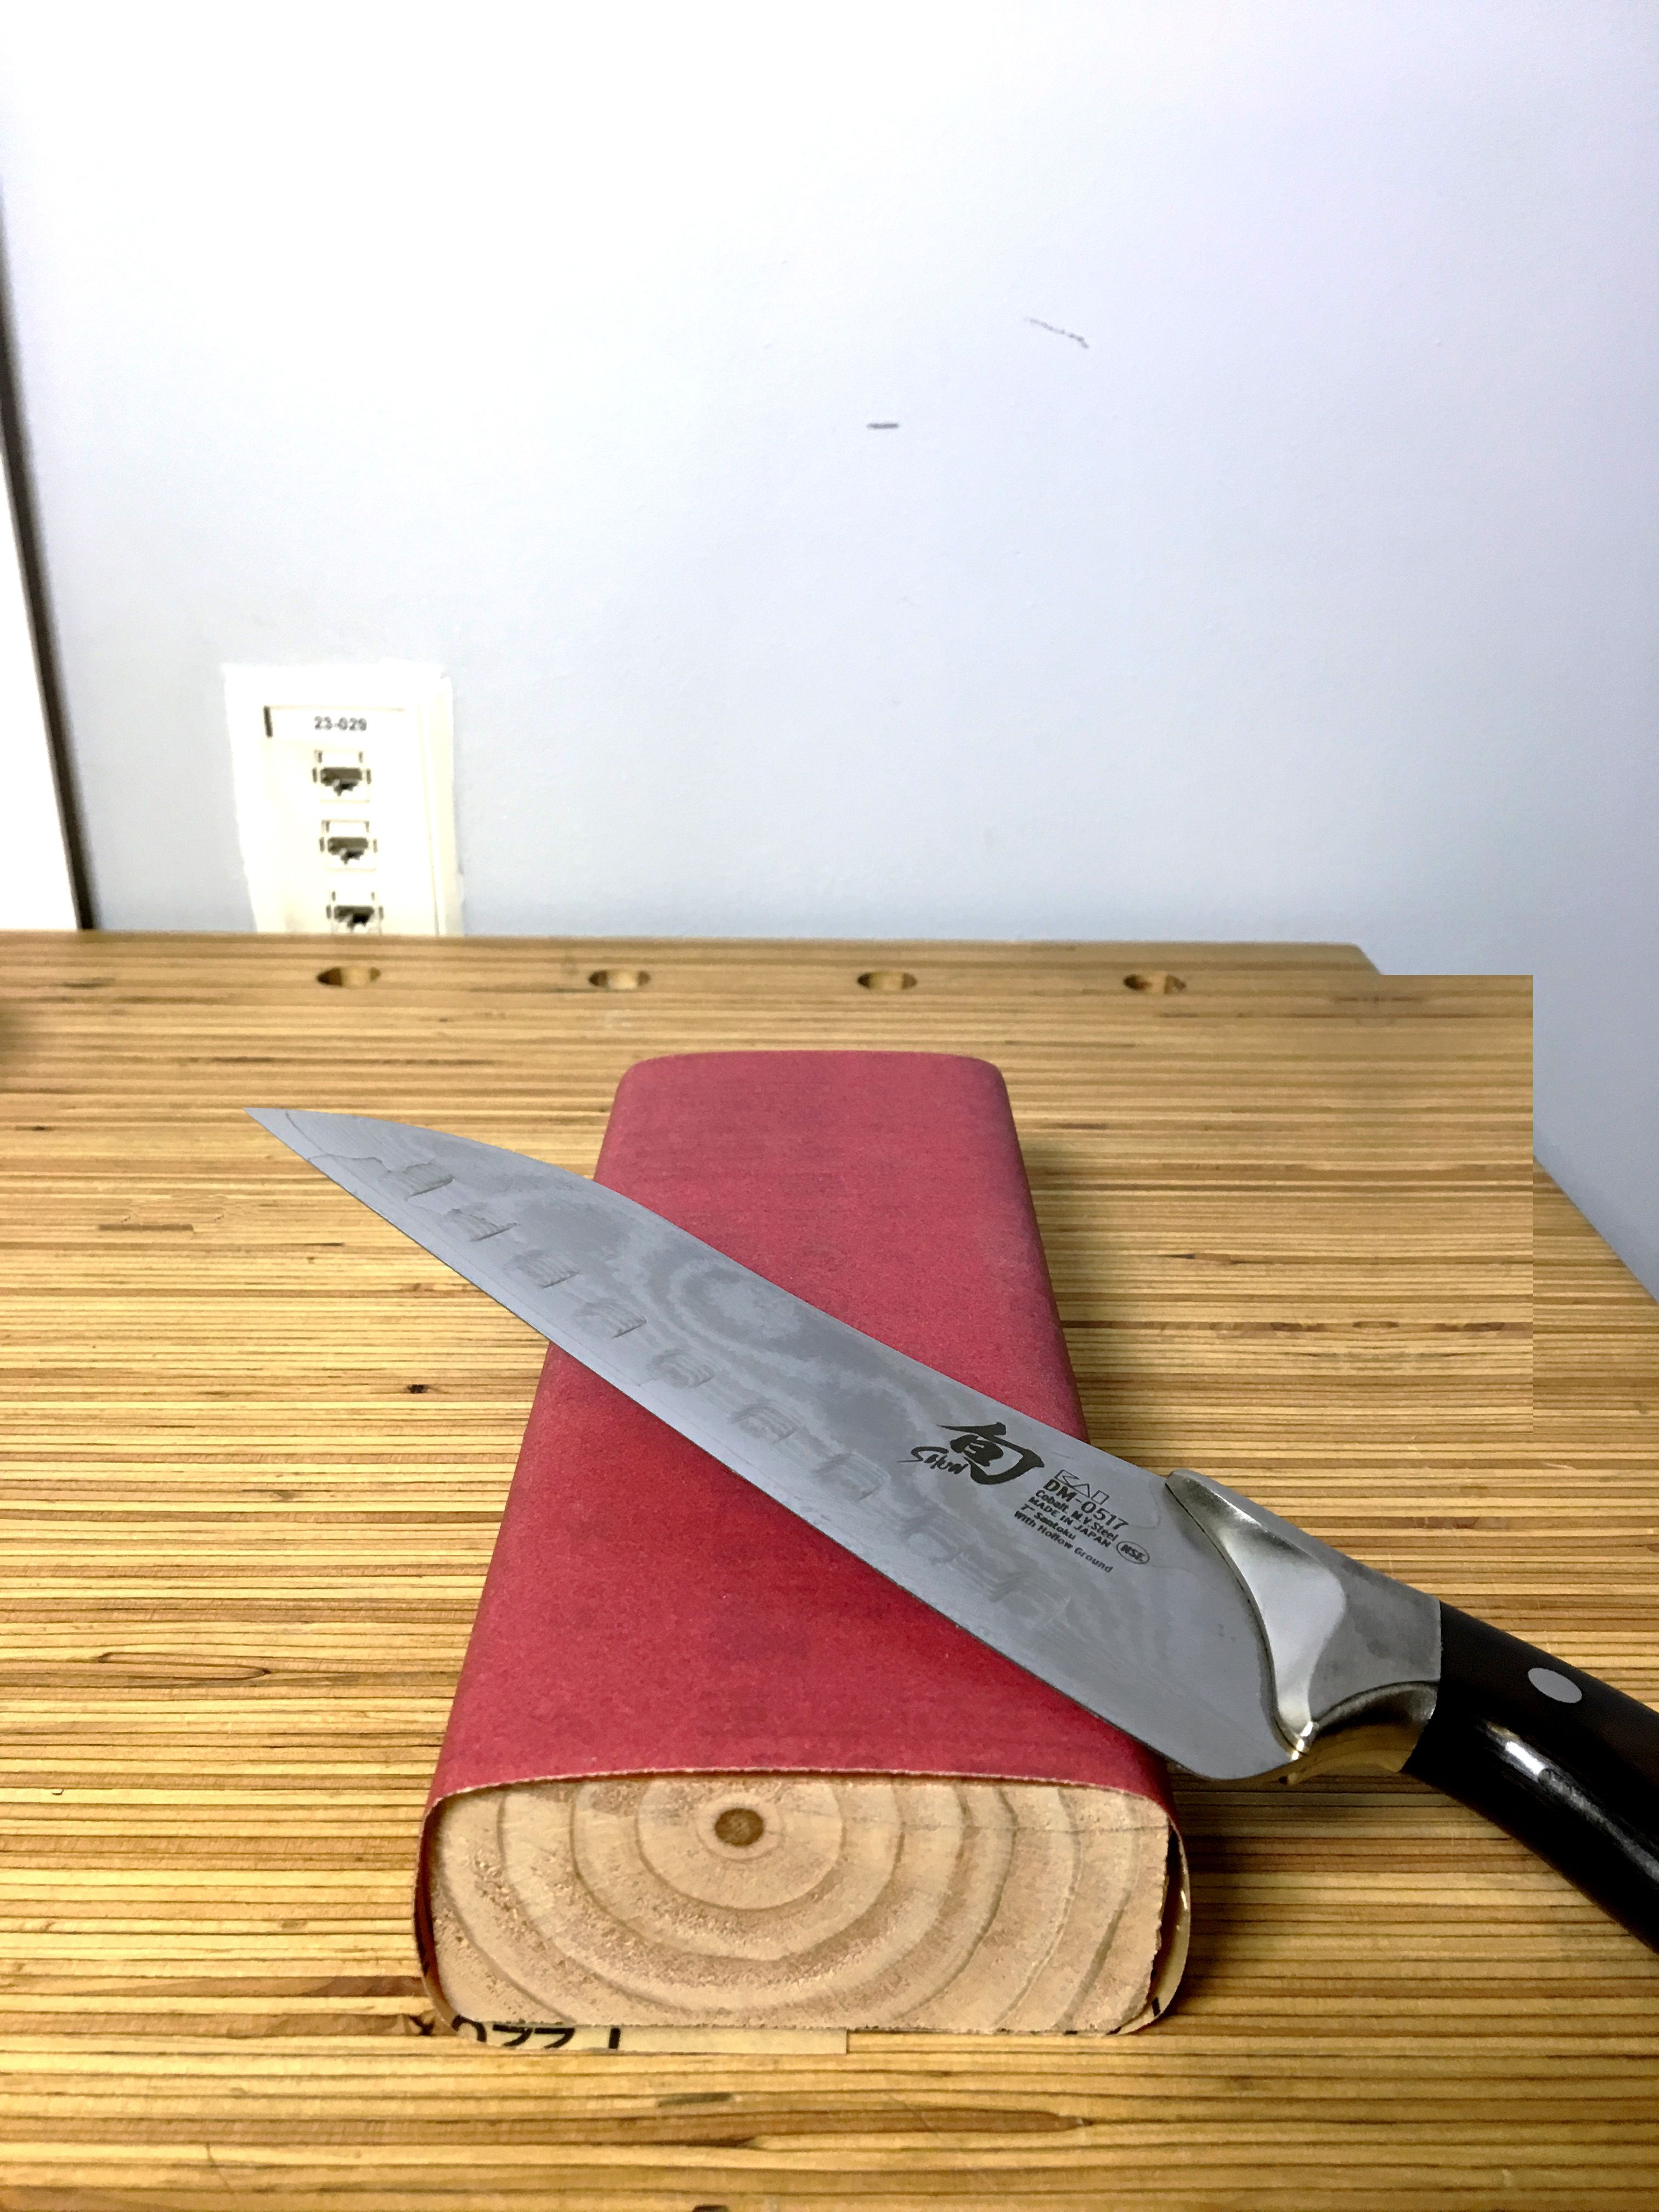 how to sharpen kitchen knives the best way to sharpen kitchen knives rh popularmechanics com how to sharpen kitchen knives best way to sharpen kitchen knives with a stone